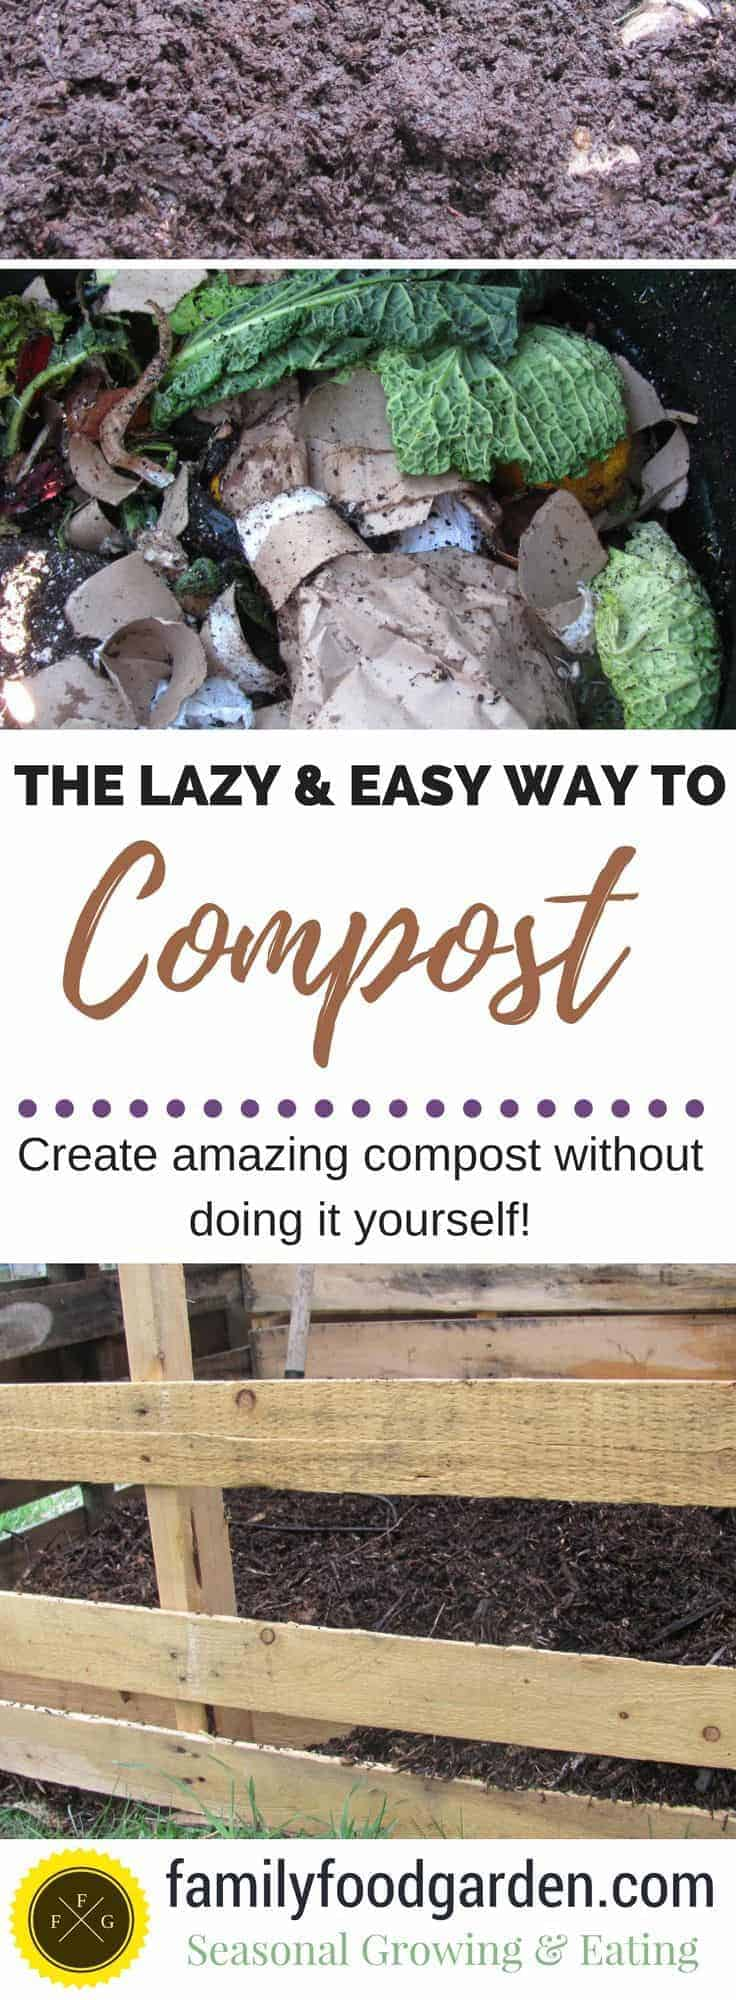 Do you suck at composting? Learn how to make amazing compost without doing it yourself!